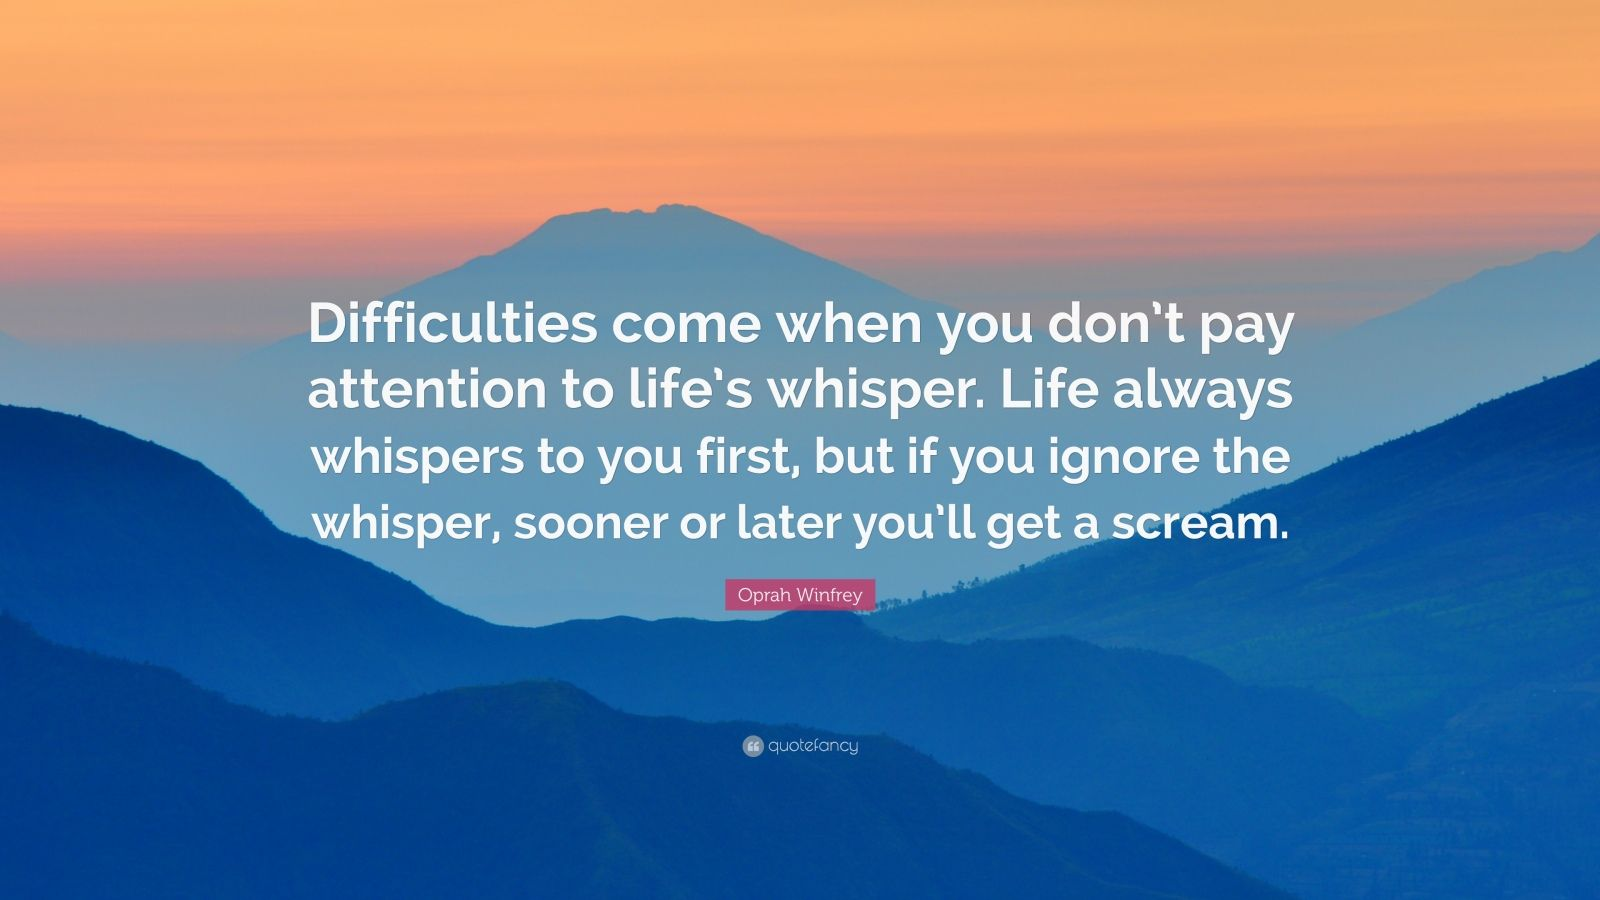 """Oprah Winfrey Quote: """"Difficulties come when you don't pay attention to life's whisper. Life always whispers to you first, but if you ignore the whisper, sooner or later you'll get a scream."""""""